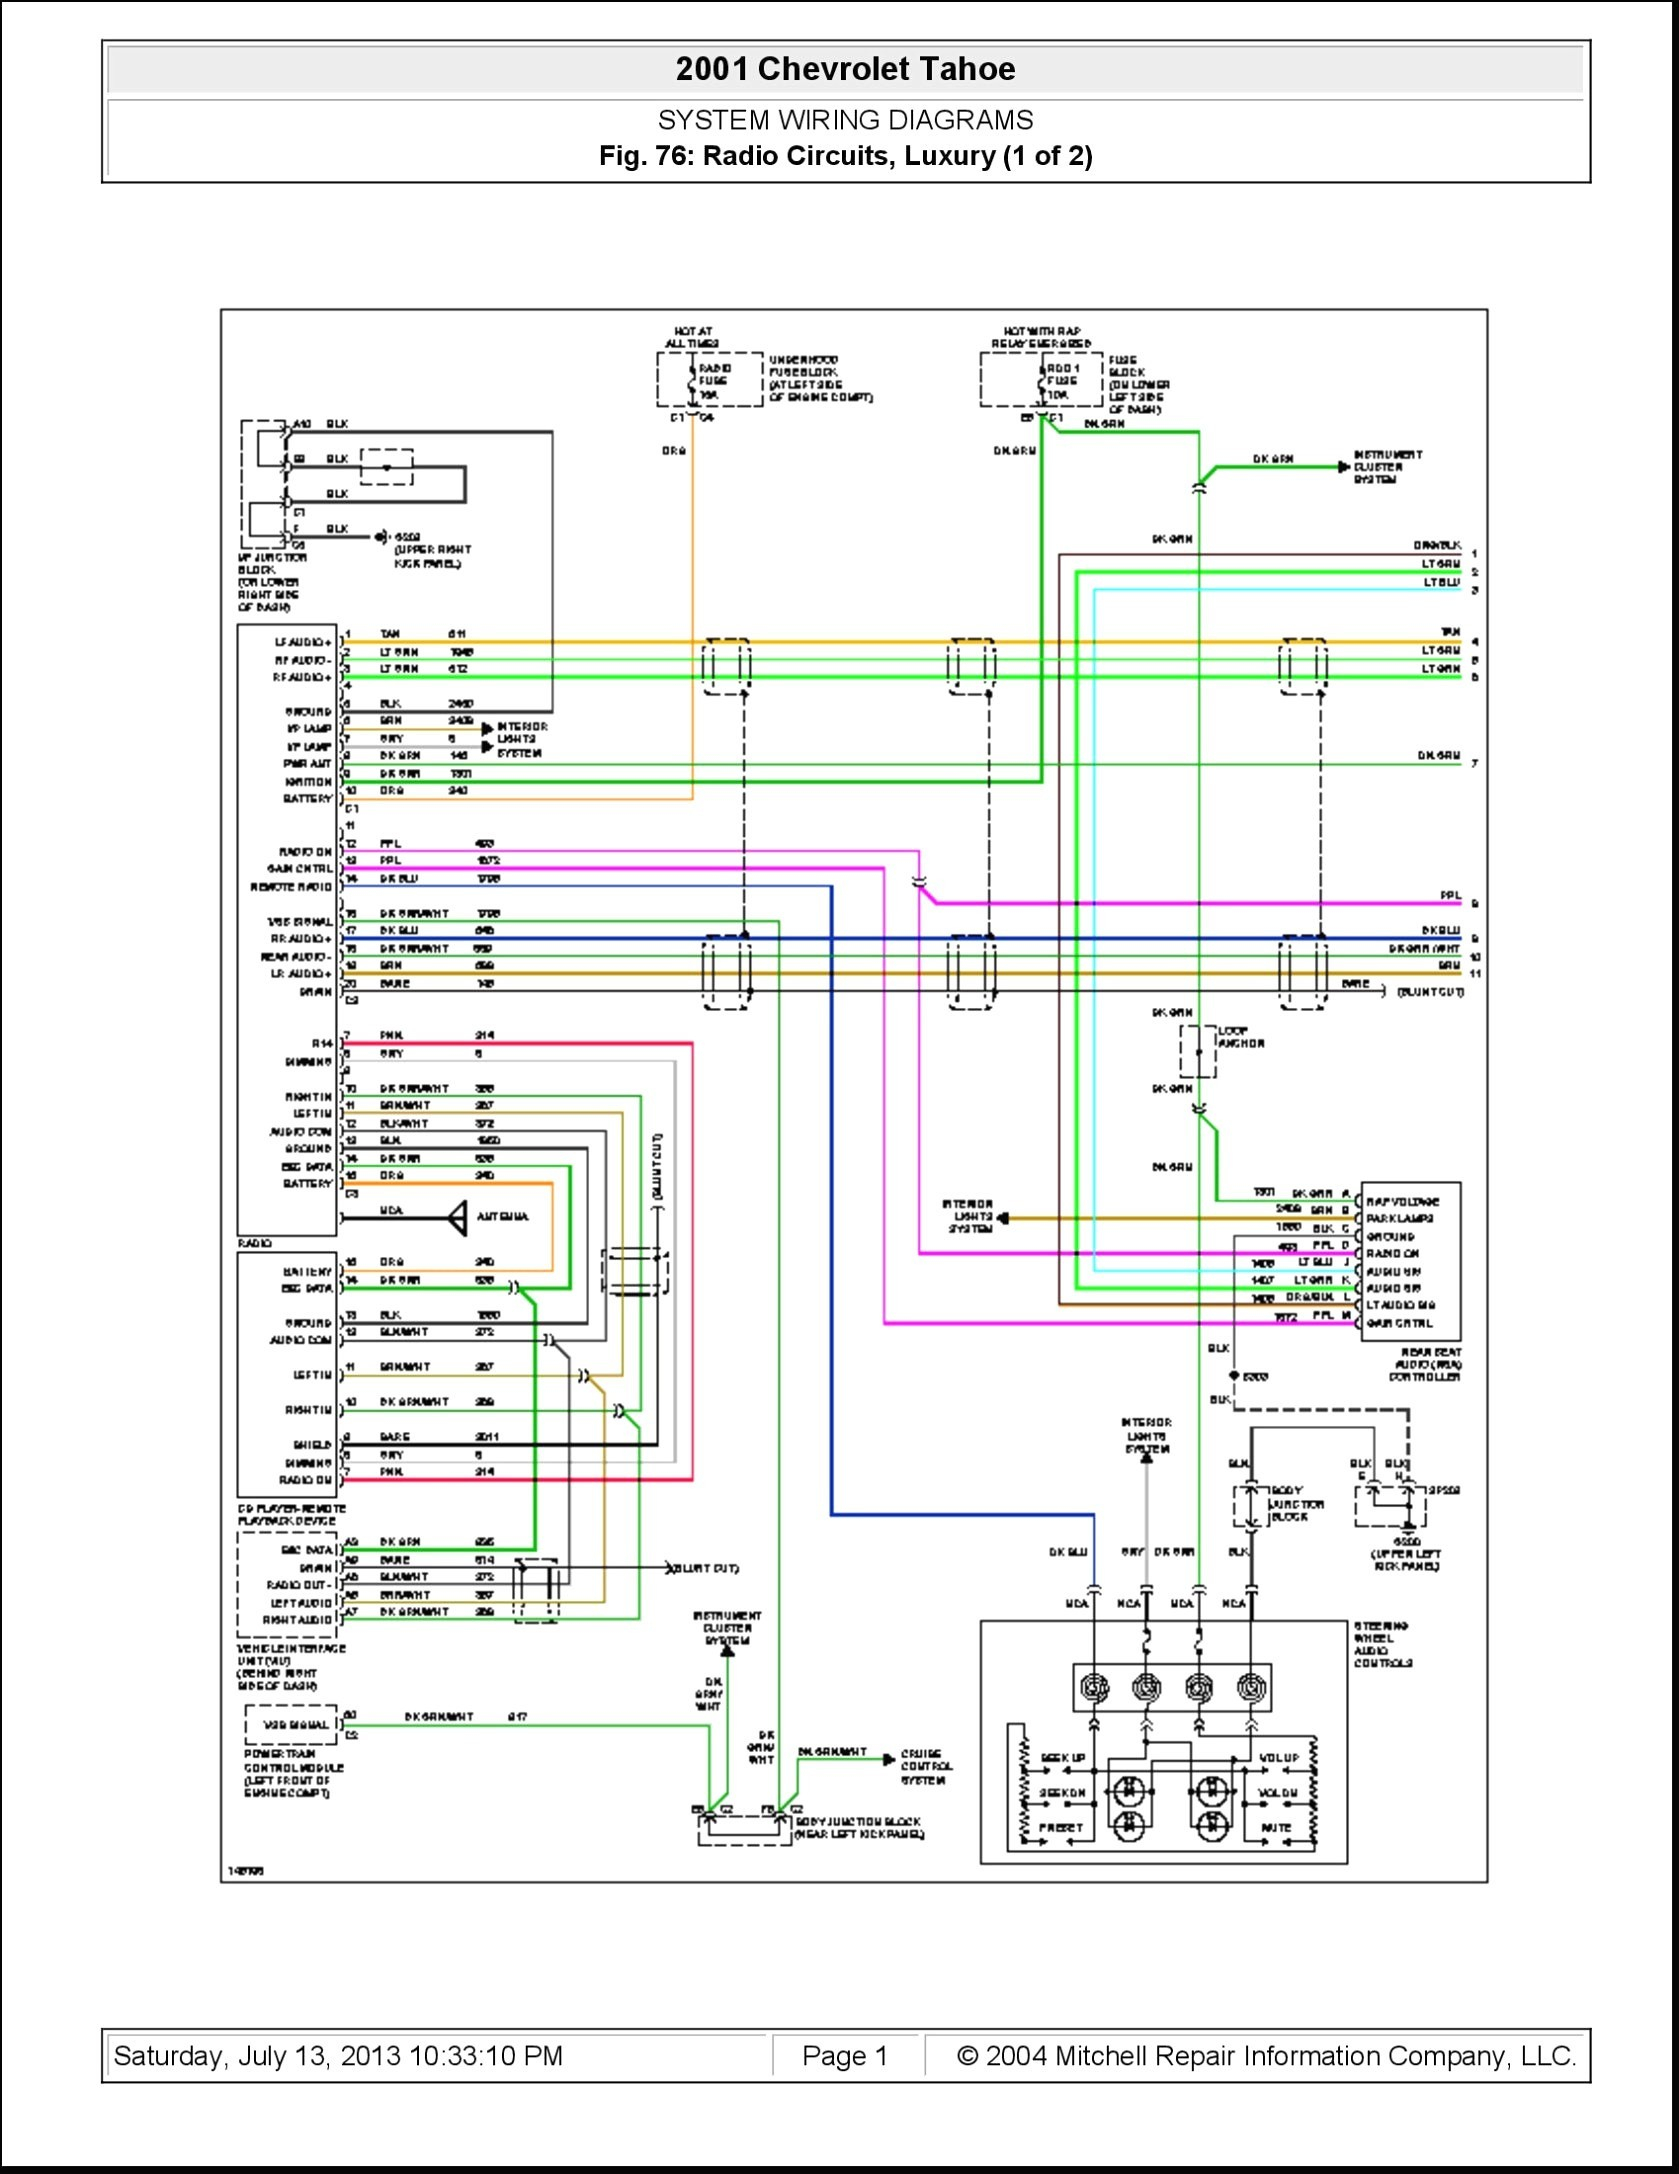 hight resolution of 2012 traverse wiring diagram wiring diagram database 2009 chevy traverse wiring diagram 2012 traverse wiring diagram